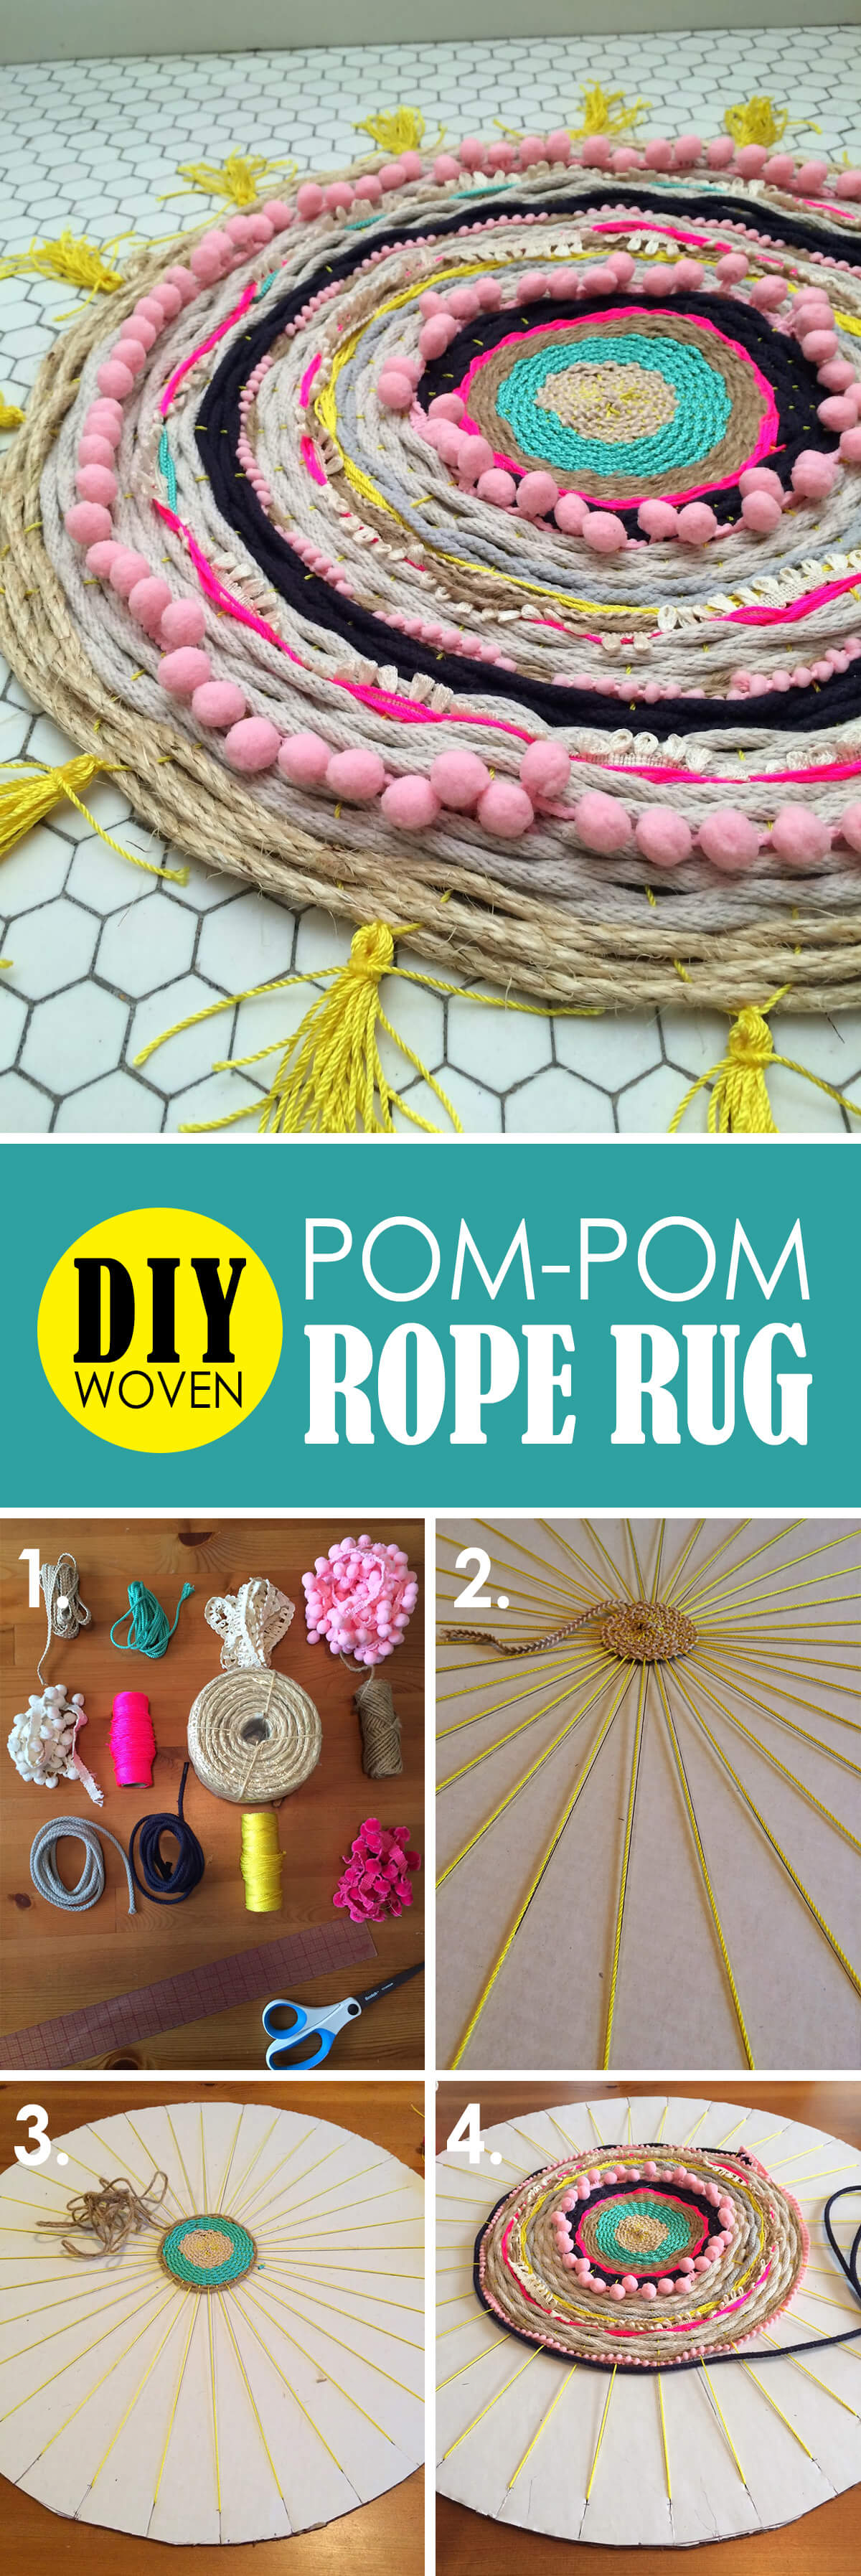 Alternating Rope and Pom-Pom Design